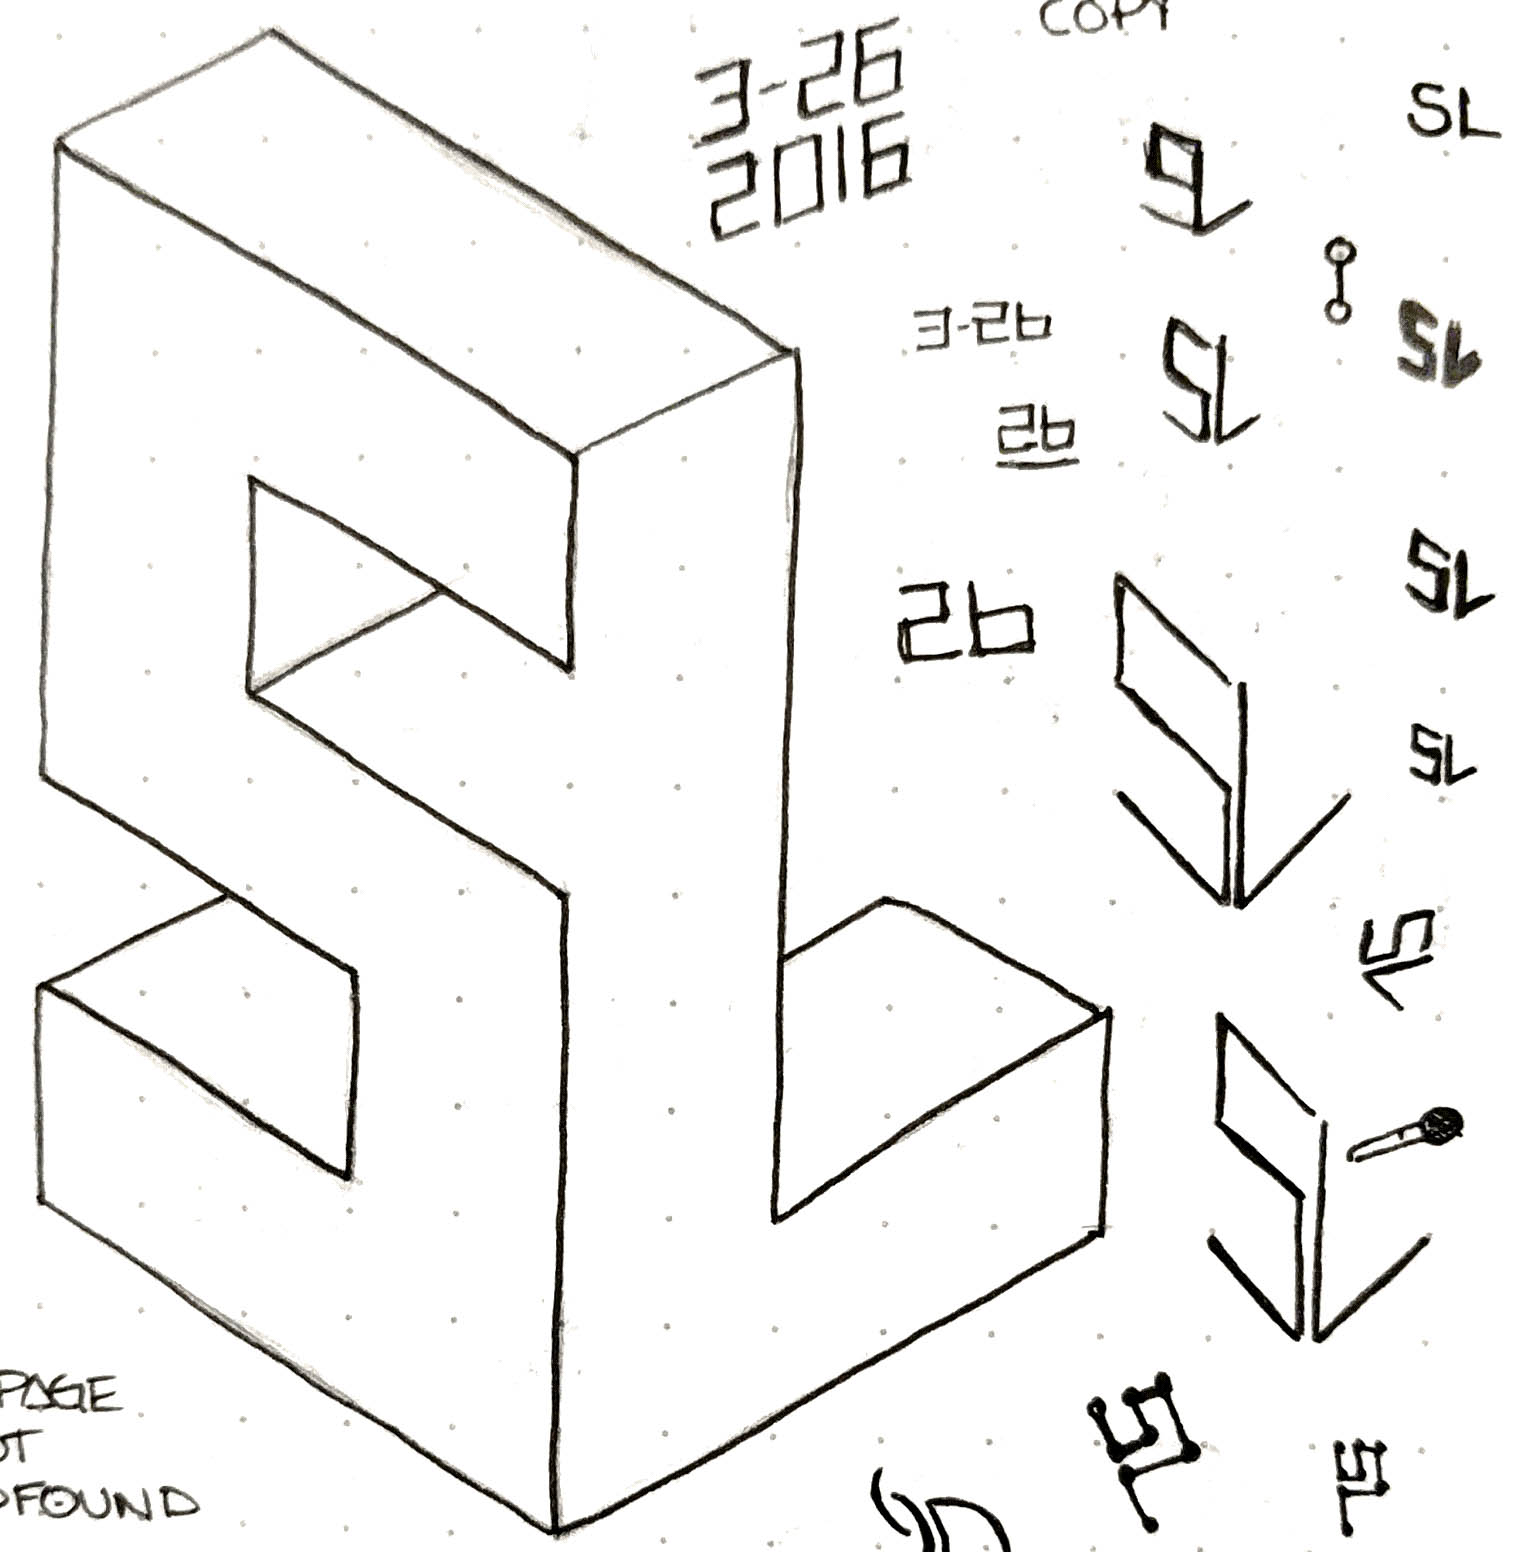 sketches of a logo with 's' and 'l' in a block formation